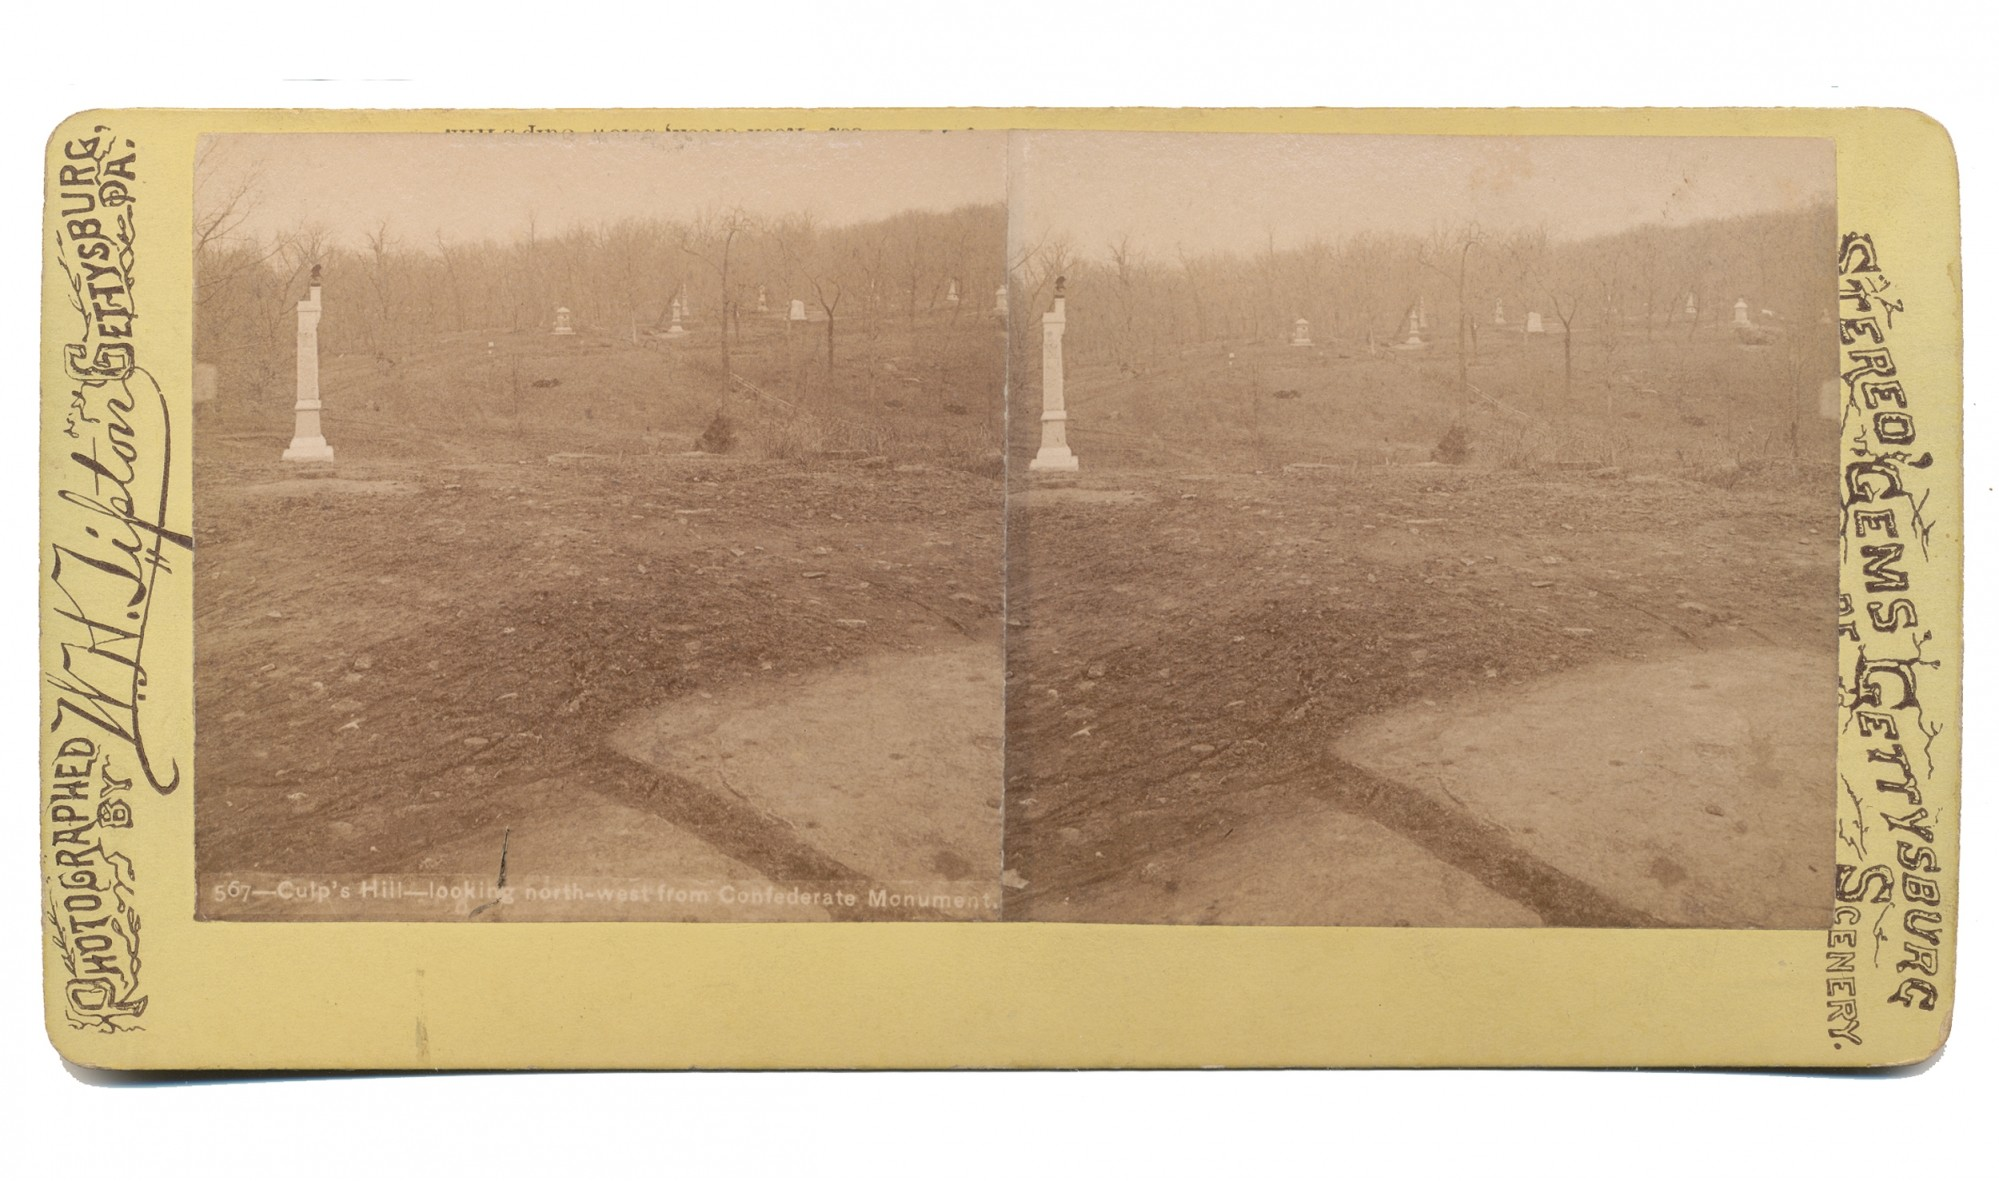 TIPTON STEREO VIEW OF CULP'S HILL